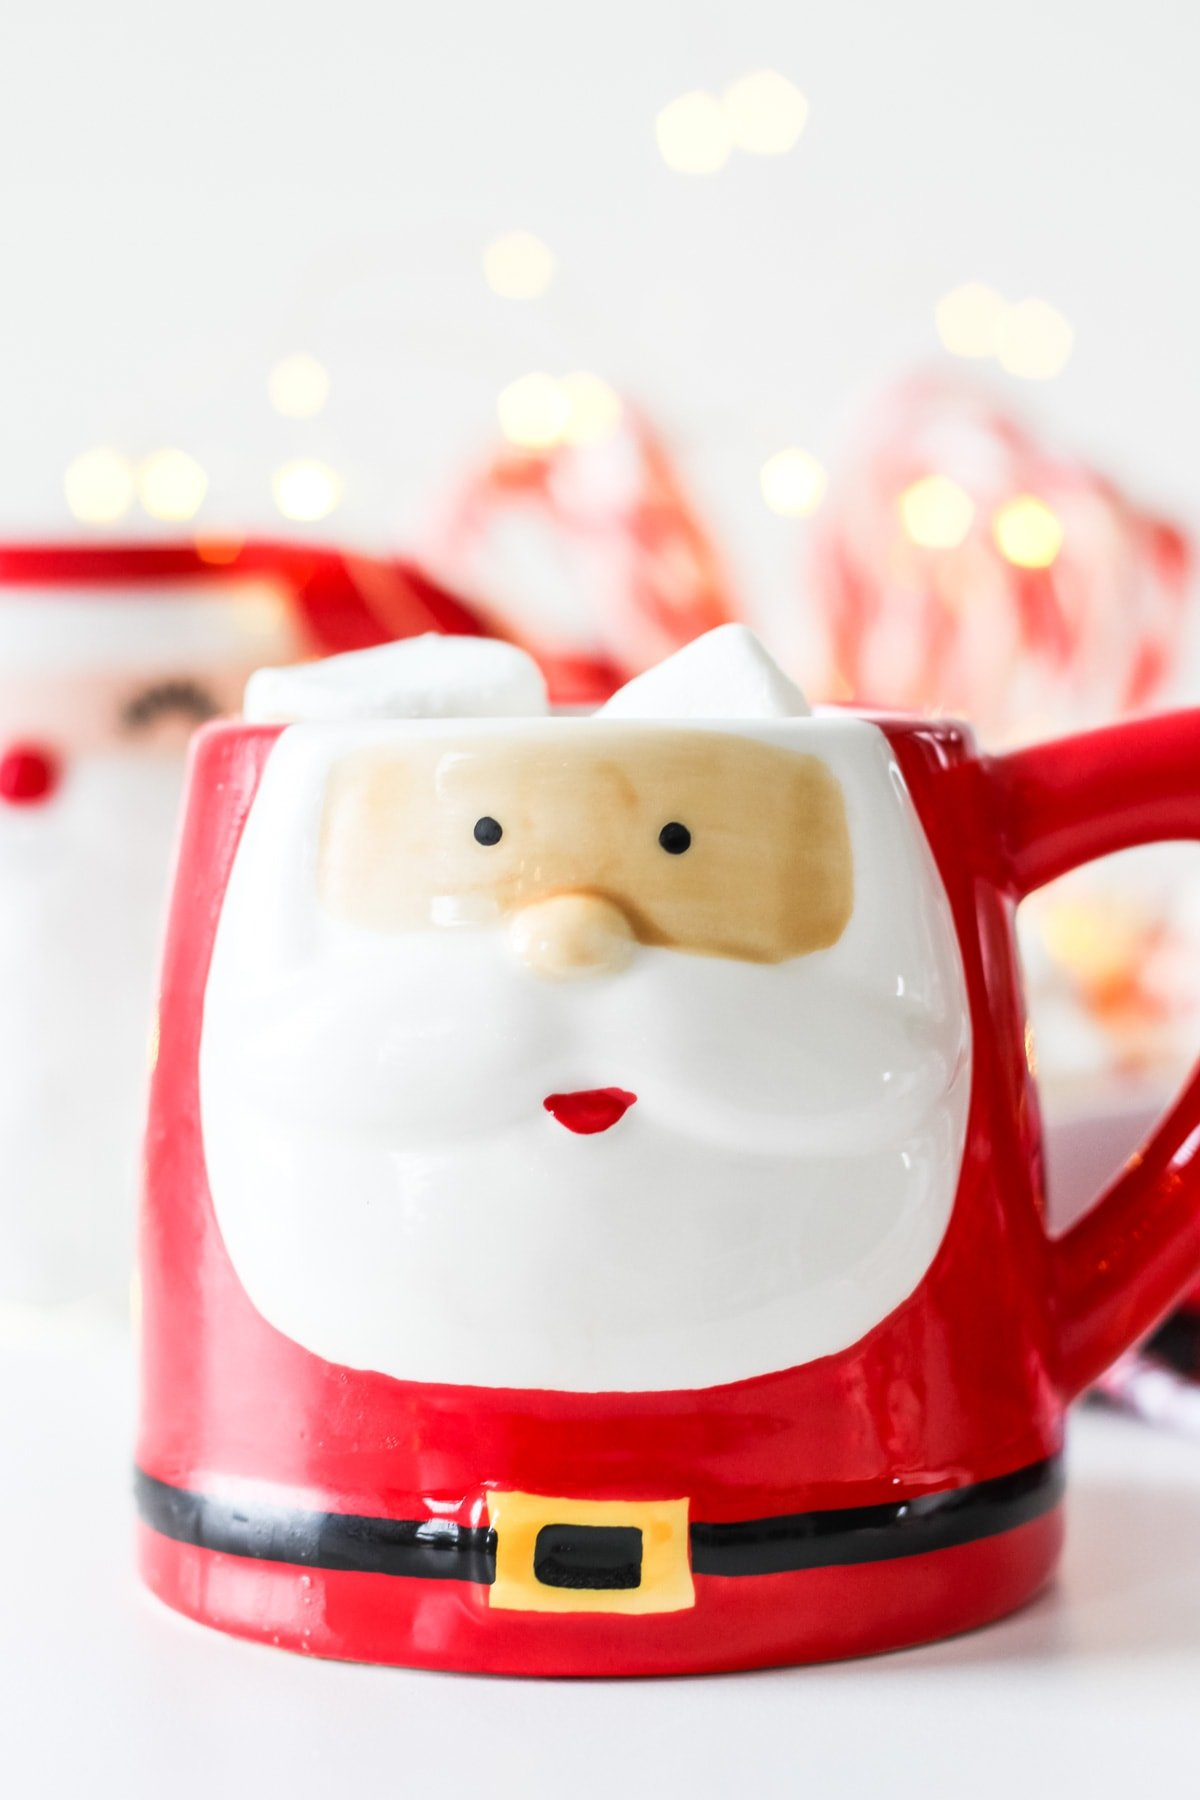 A Santa mug with the Bokeh effect in the background